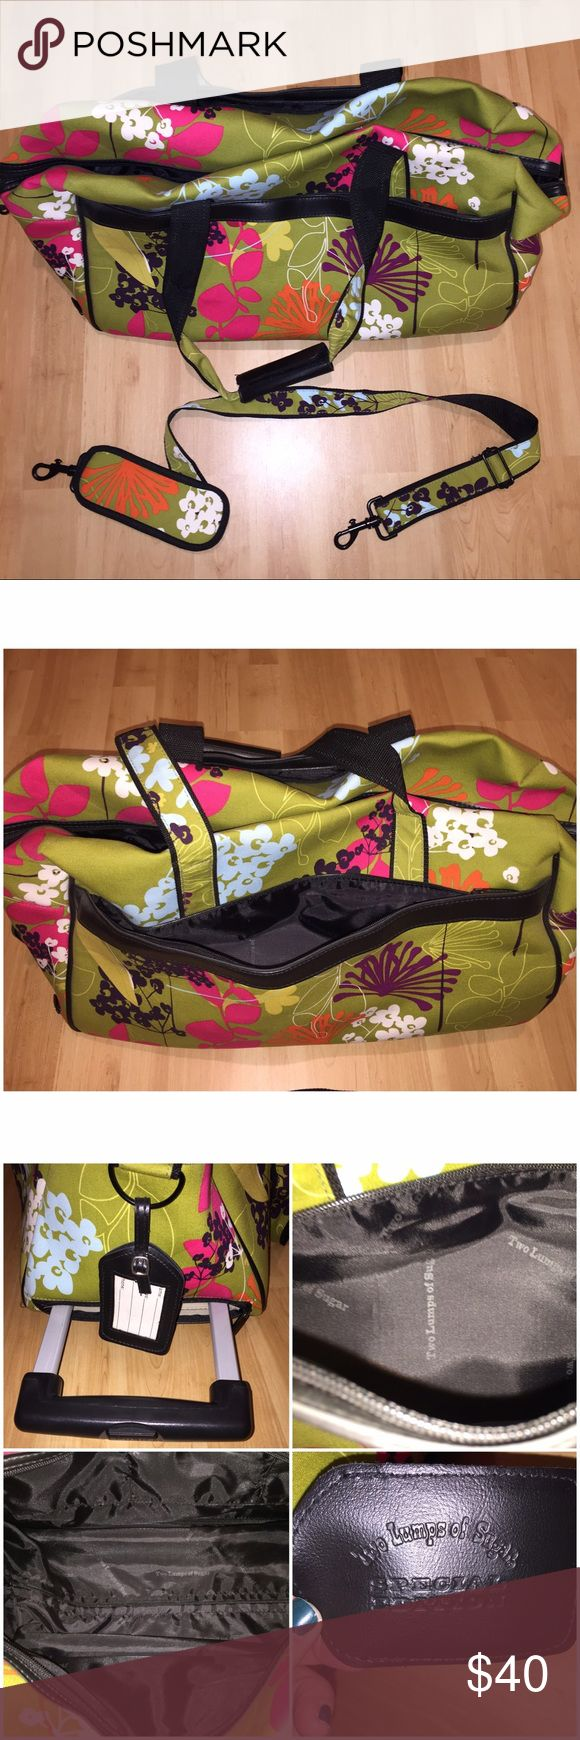 ⬇️PRICE DROP⬇️BNWOT Two Lumps Of Sugar Travel Bag BNWOT Two Lumps of Sugar Rolling Travel Bag comes BRAND NEW without tag. Beautiful floral print is perfect for the trendy traveler! Can be rolled, carried by the short handle or cross body with the long handle! My prices fluctuate from time to time. Catch items when the prices are low!❤️ Two Lumps of Sugar Bags Travel Bags